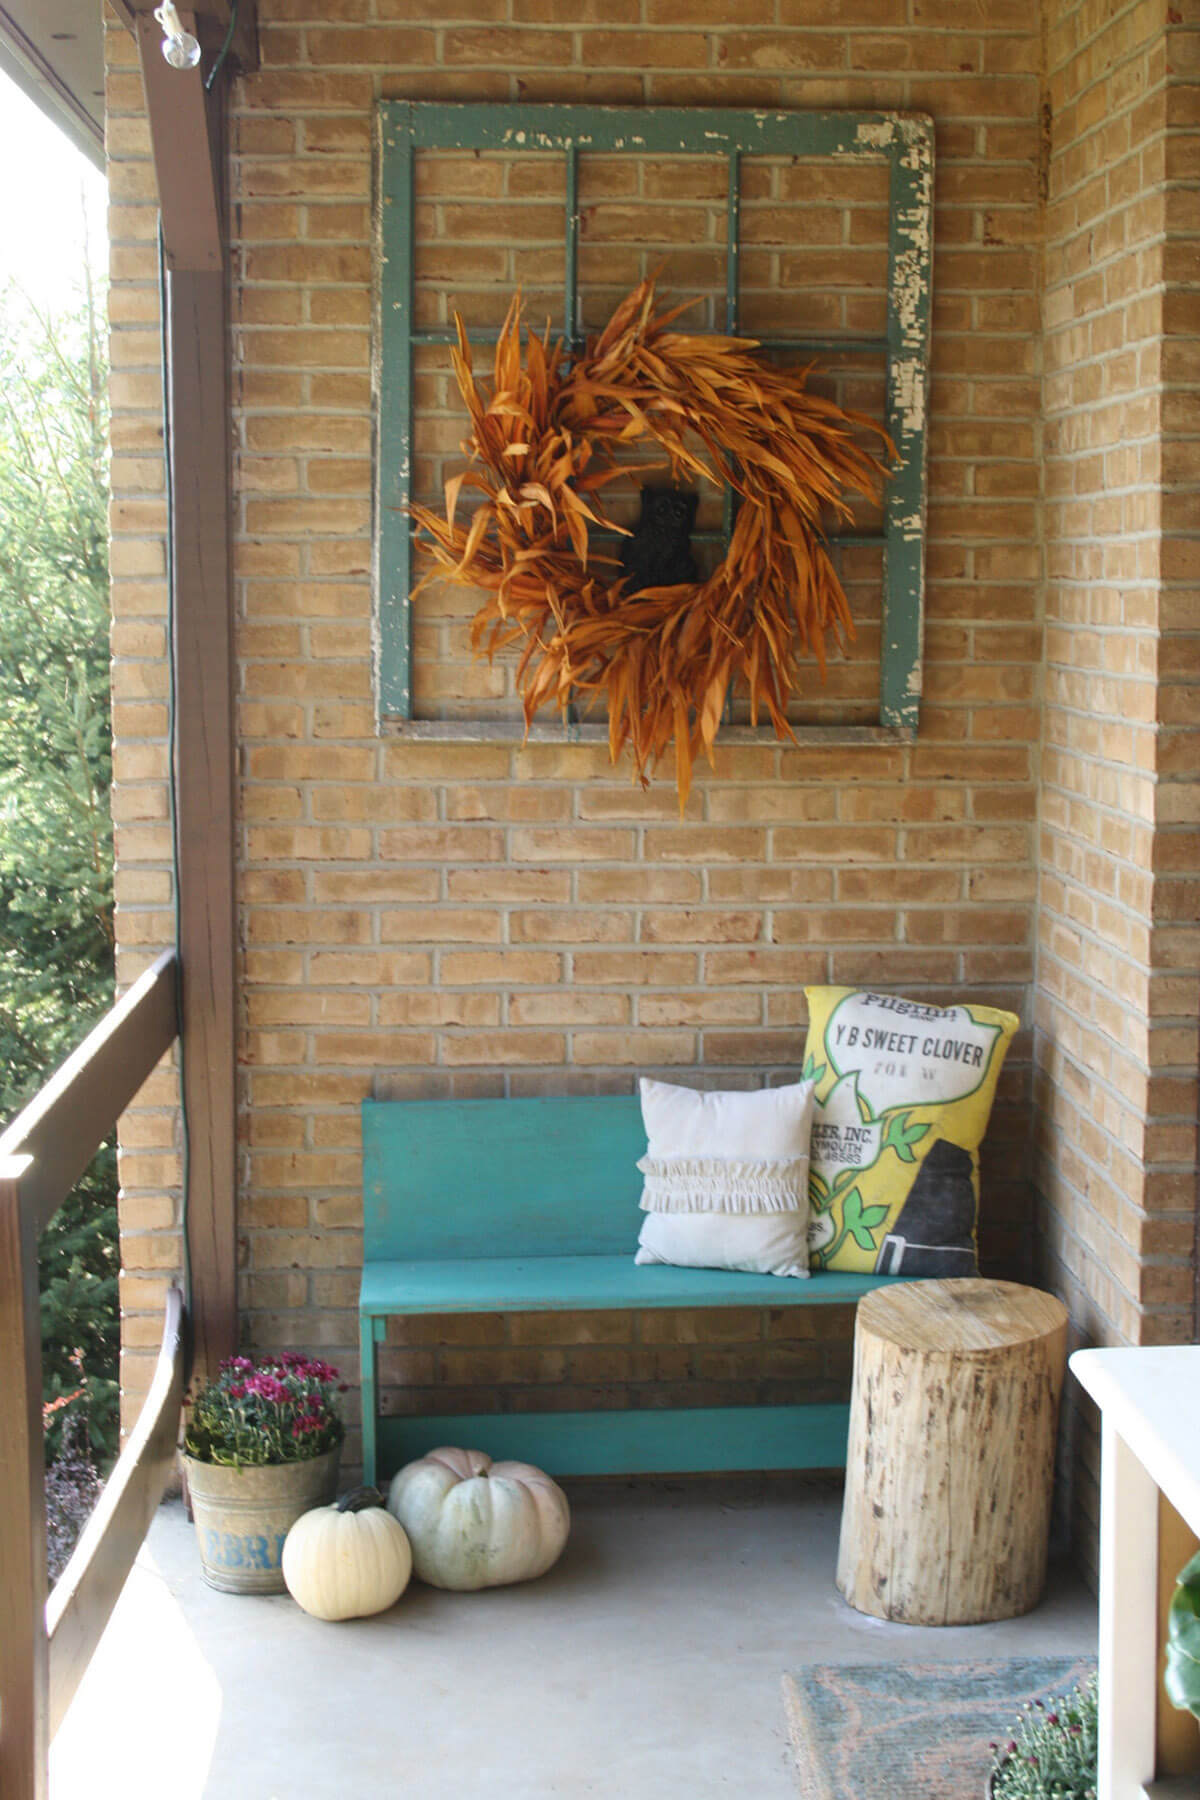 34 Best Porch Wall Decor Ideas and Designs for 2020 on Wall Decor Ideas  id=33433